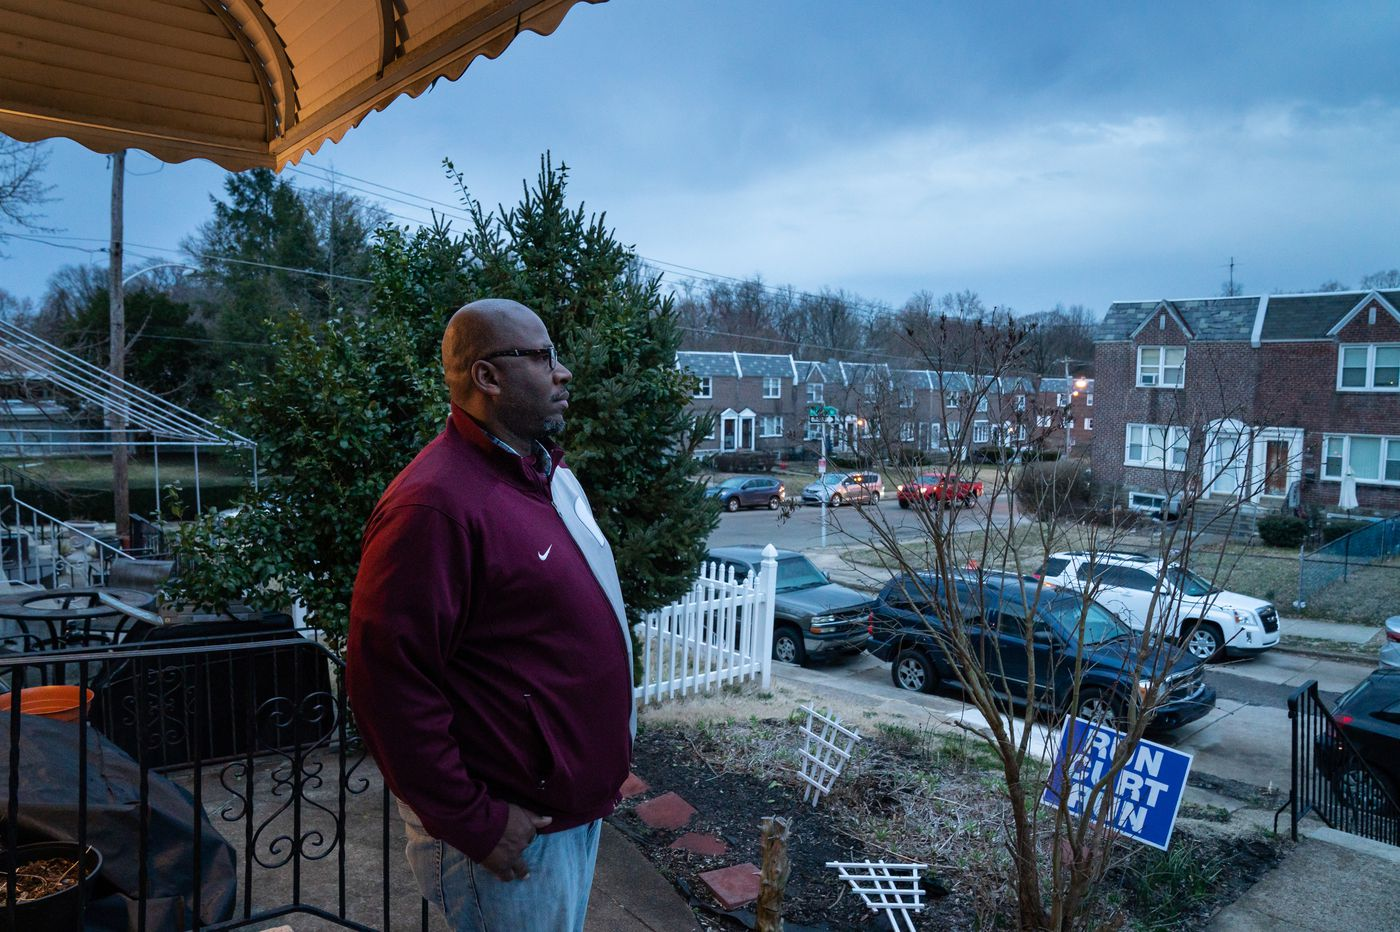 After 4 killings, Overbrook Park, once an island of calm on the edge